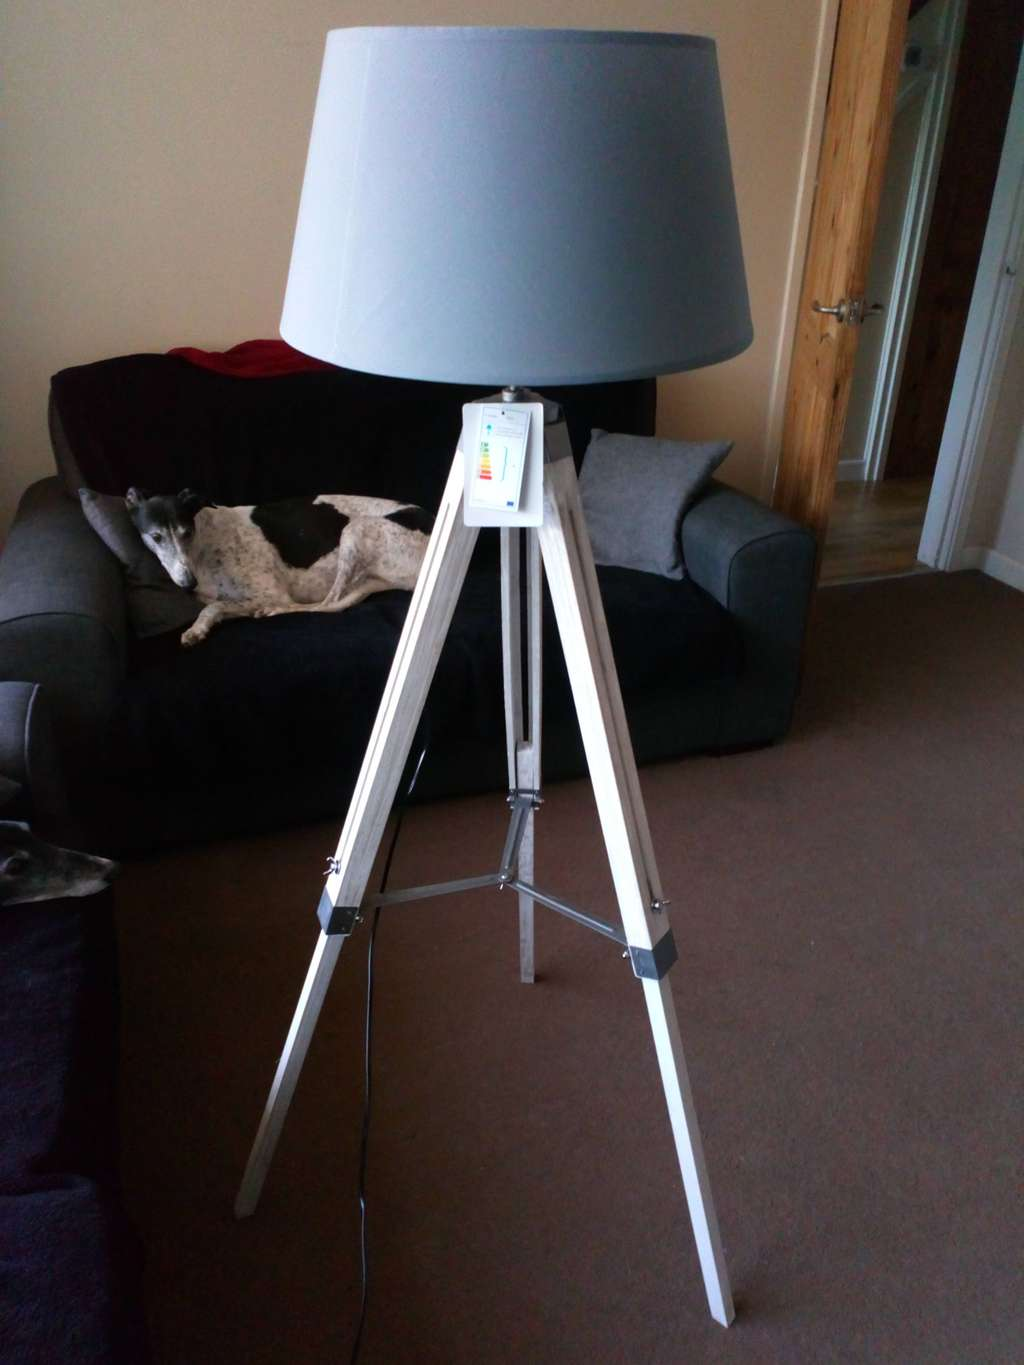 Grey tripod floor lamp 2699 in store at home bargains hotukdeals solutioingenieria Choice Image